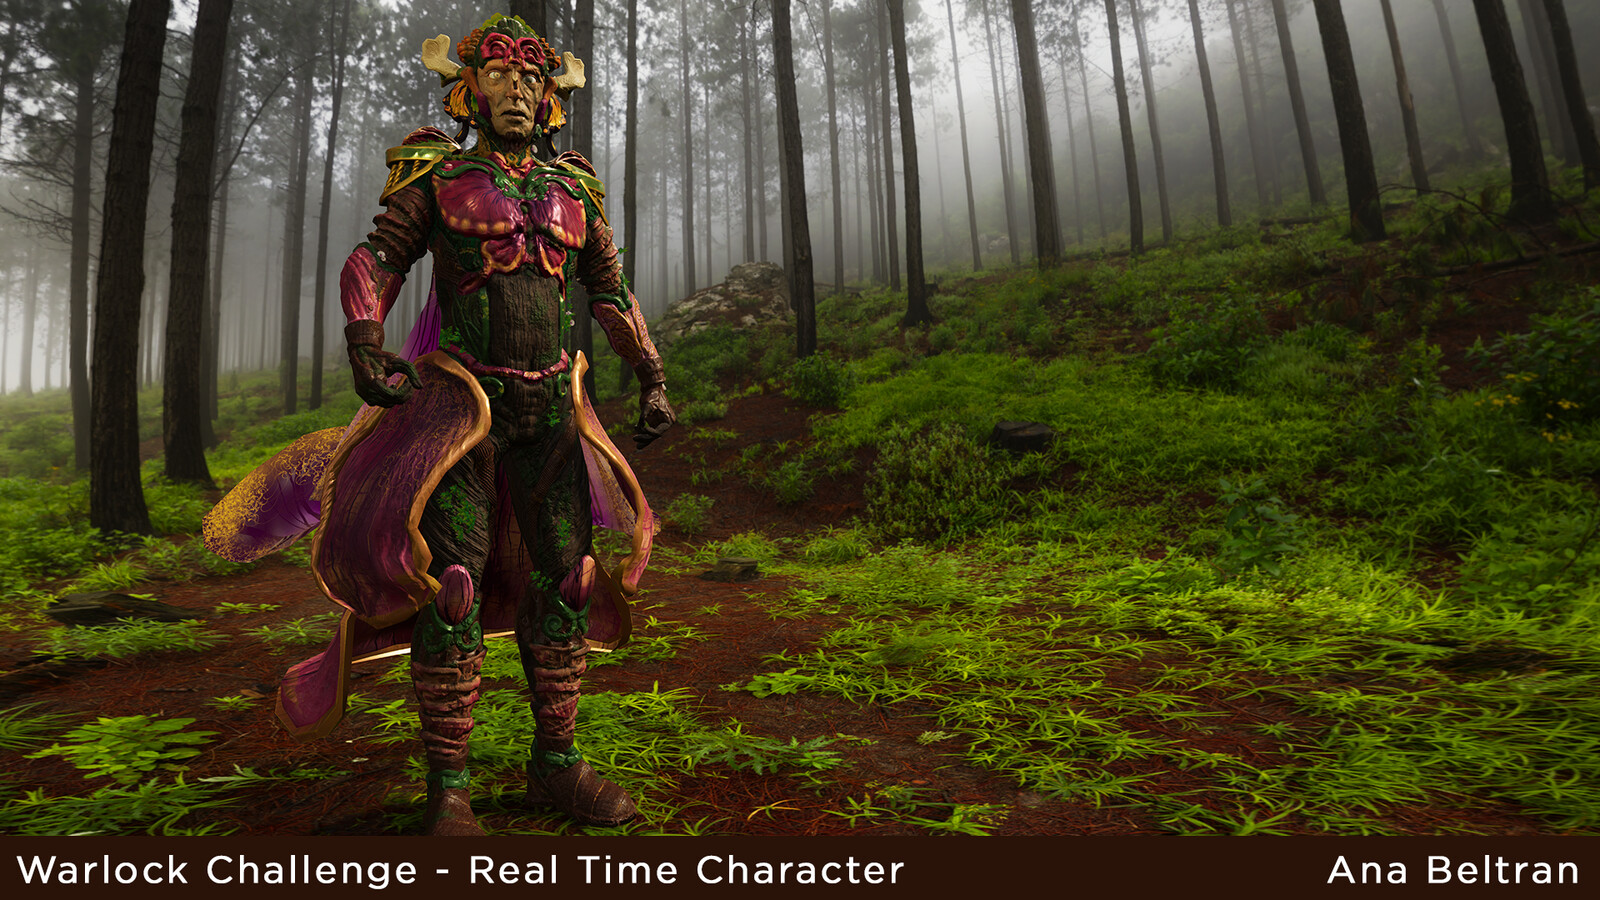 Character rendered in Unreal Engine 4 with a forest HDR background